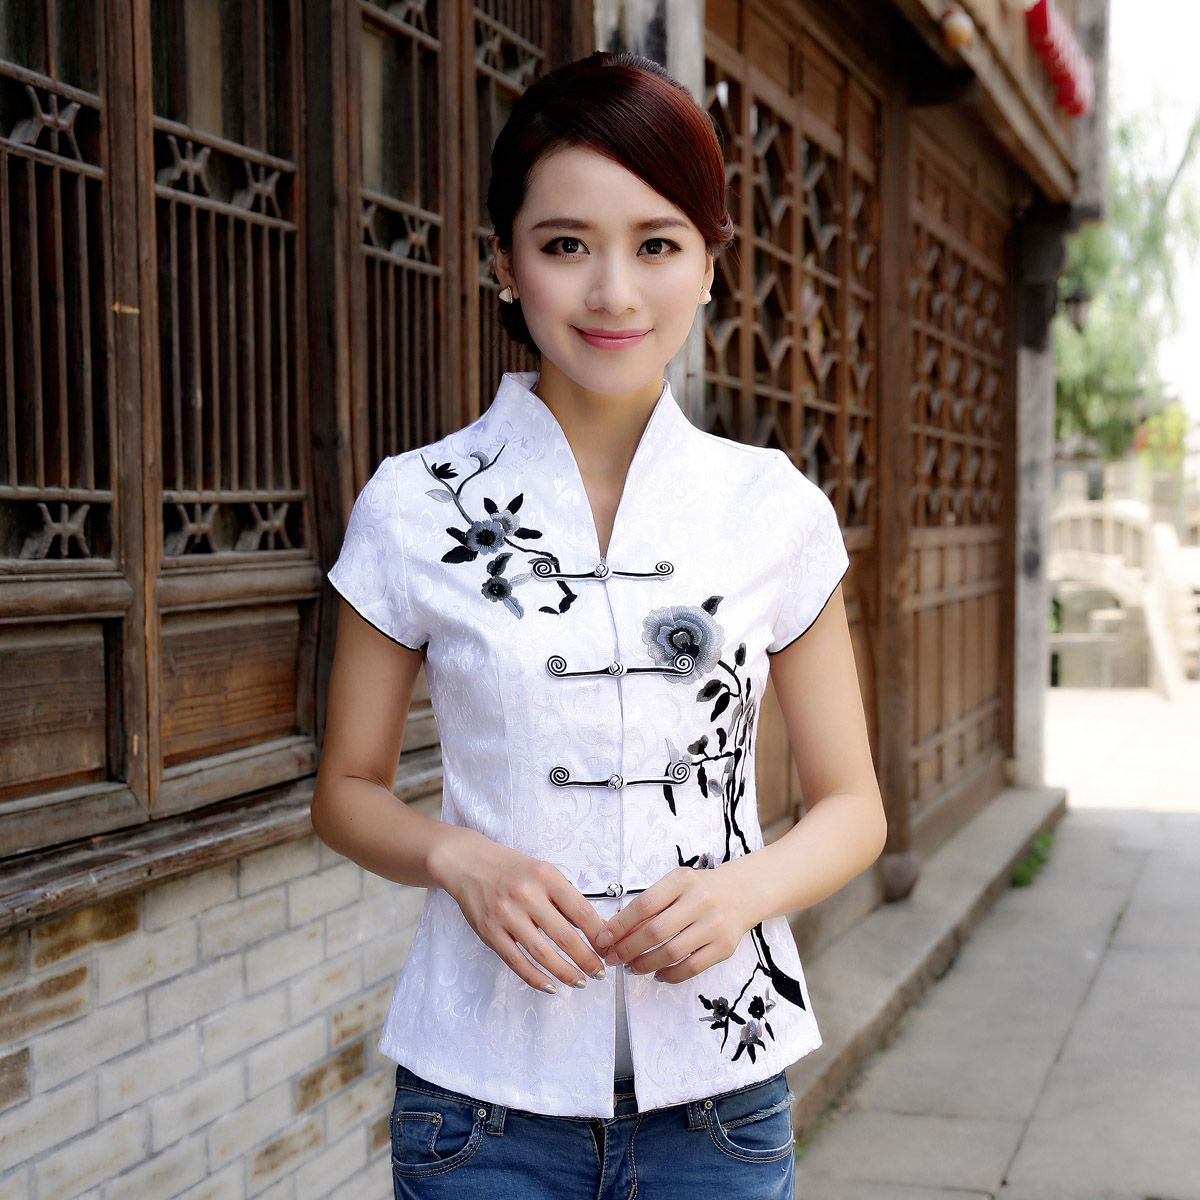 10% off - Coupon code: 9fuda-p10 - no minimum! - Attractive Open Neck Oriental Style White Shirt - Chinese Shirts & Blouses - Women